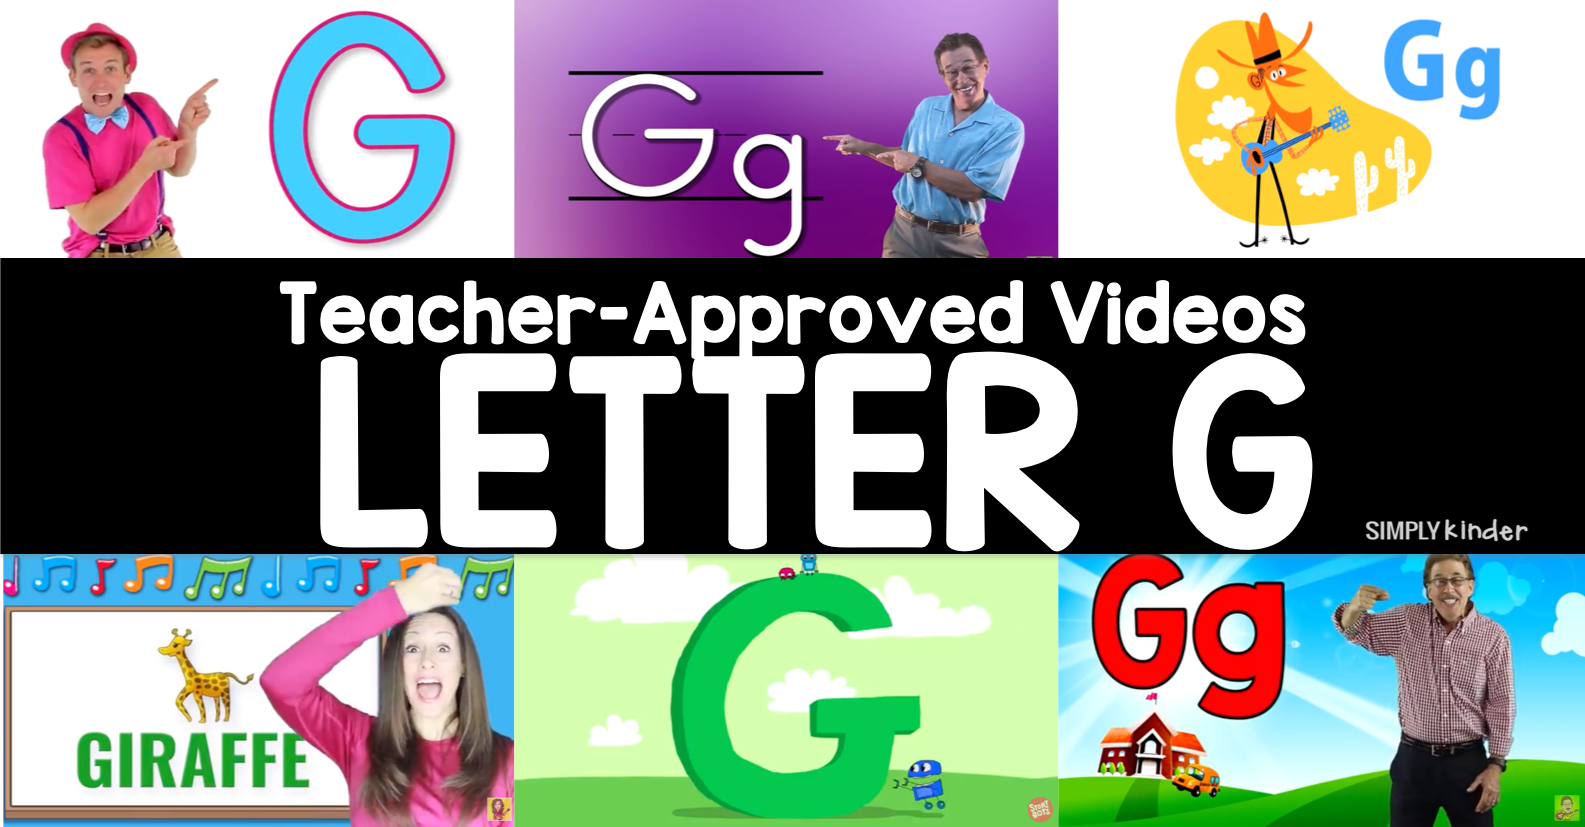 Teacher-Approved Videos Letter G